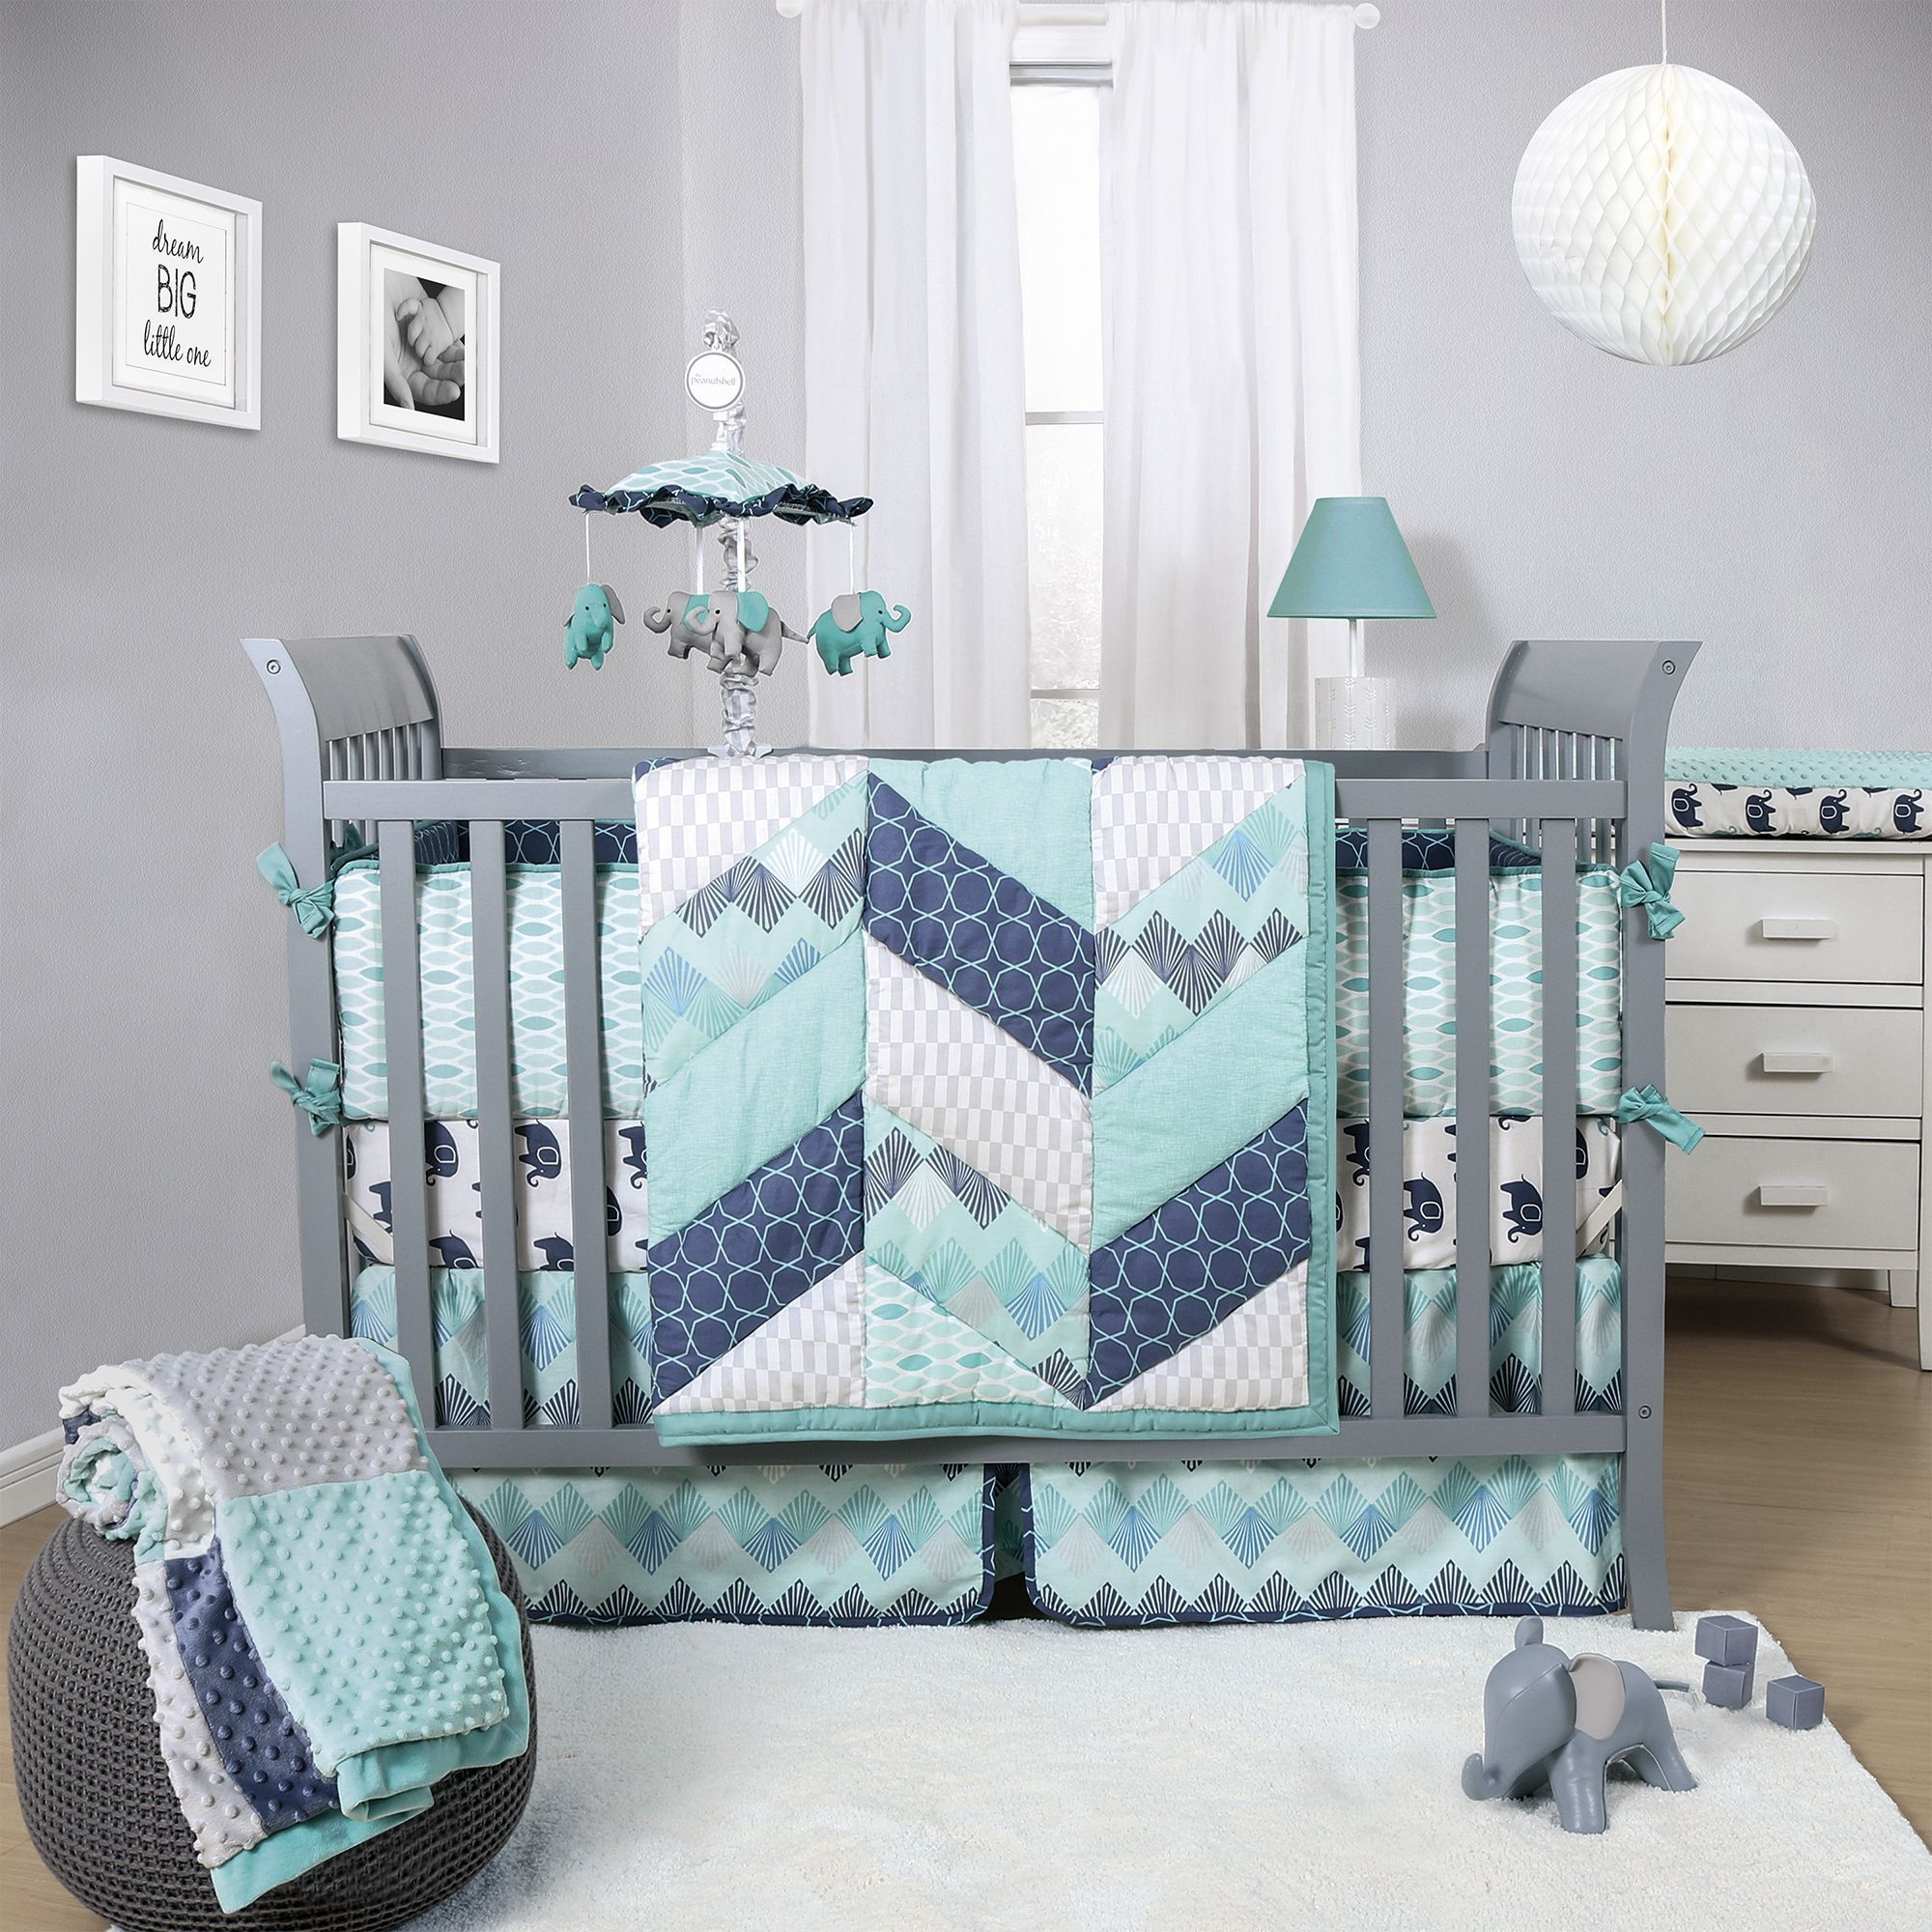 Baby Bedrooms Designs The Peanut Shell Mosaic 3 Piece Crib Bedding Set Features